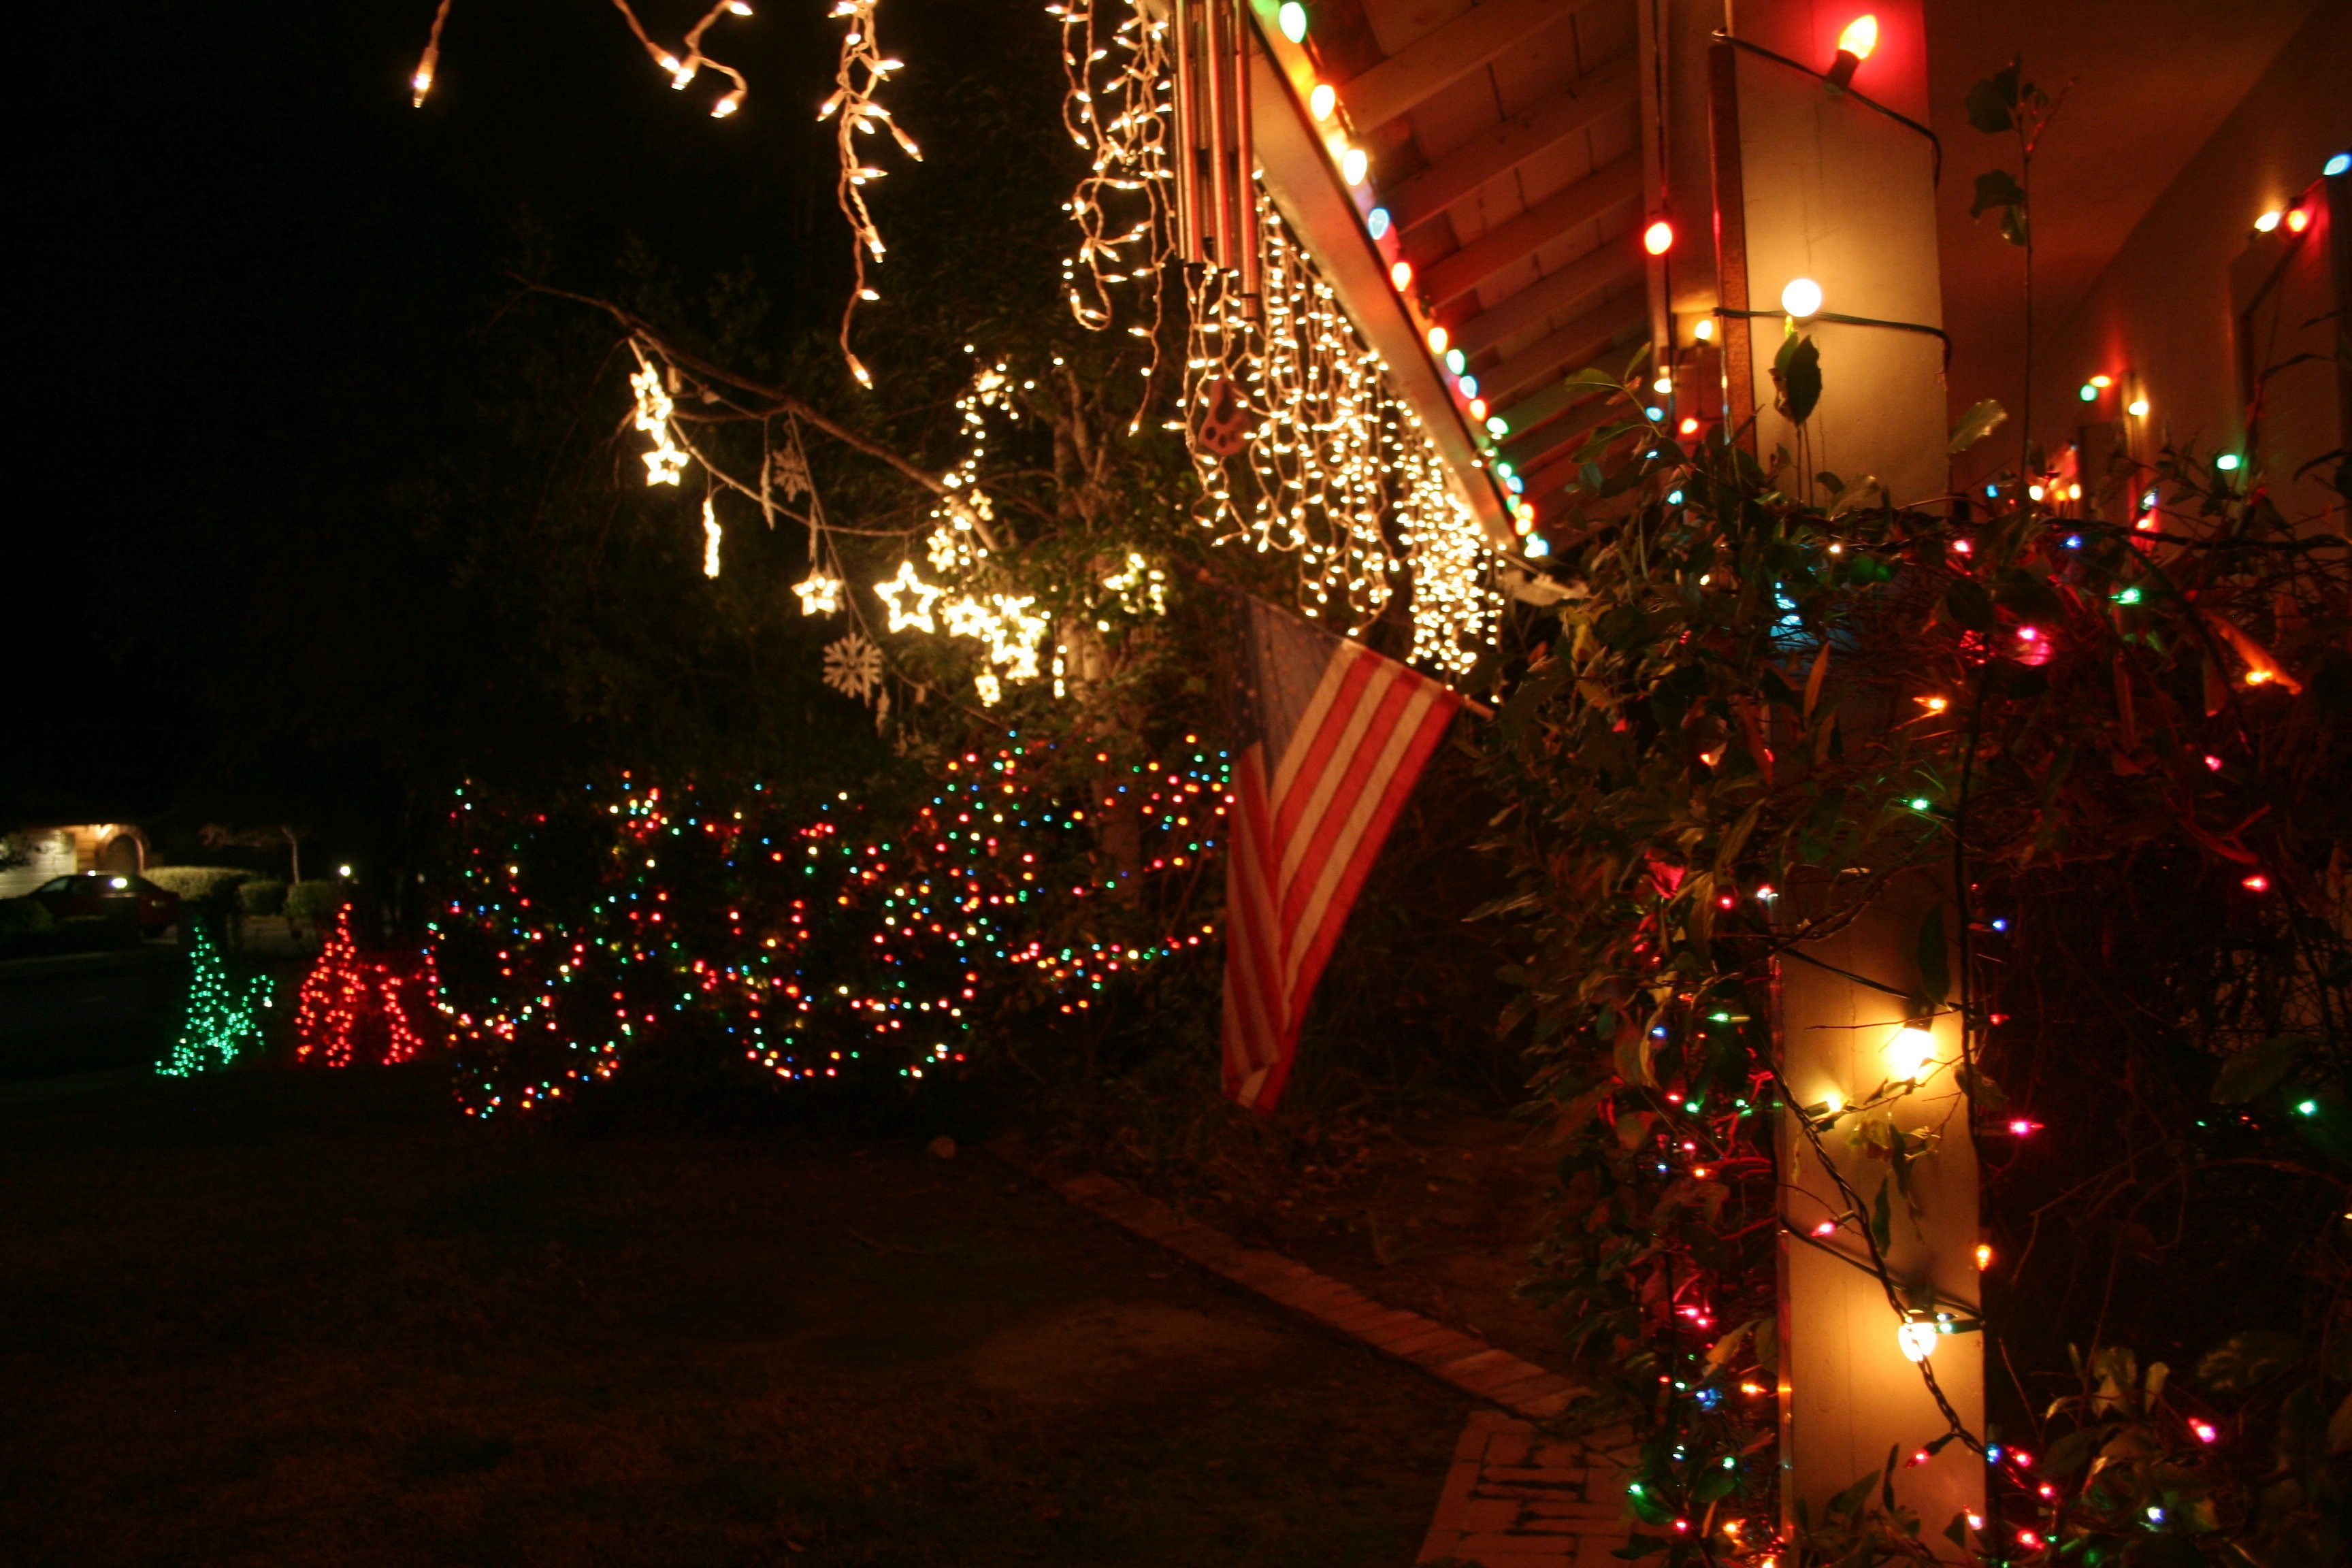 for example the birch tree with the two strings of white stars in them would normally have those plus at least two or three strings of plain white lights